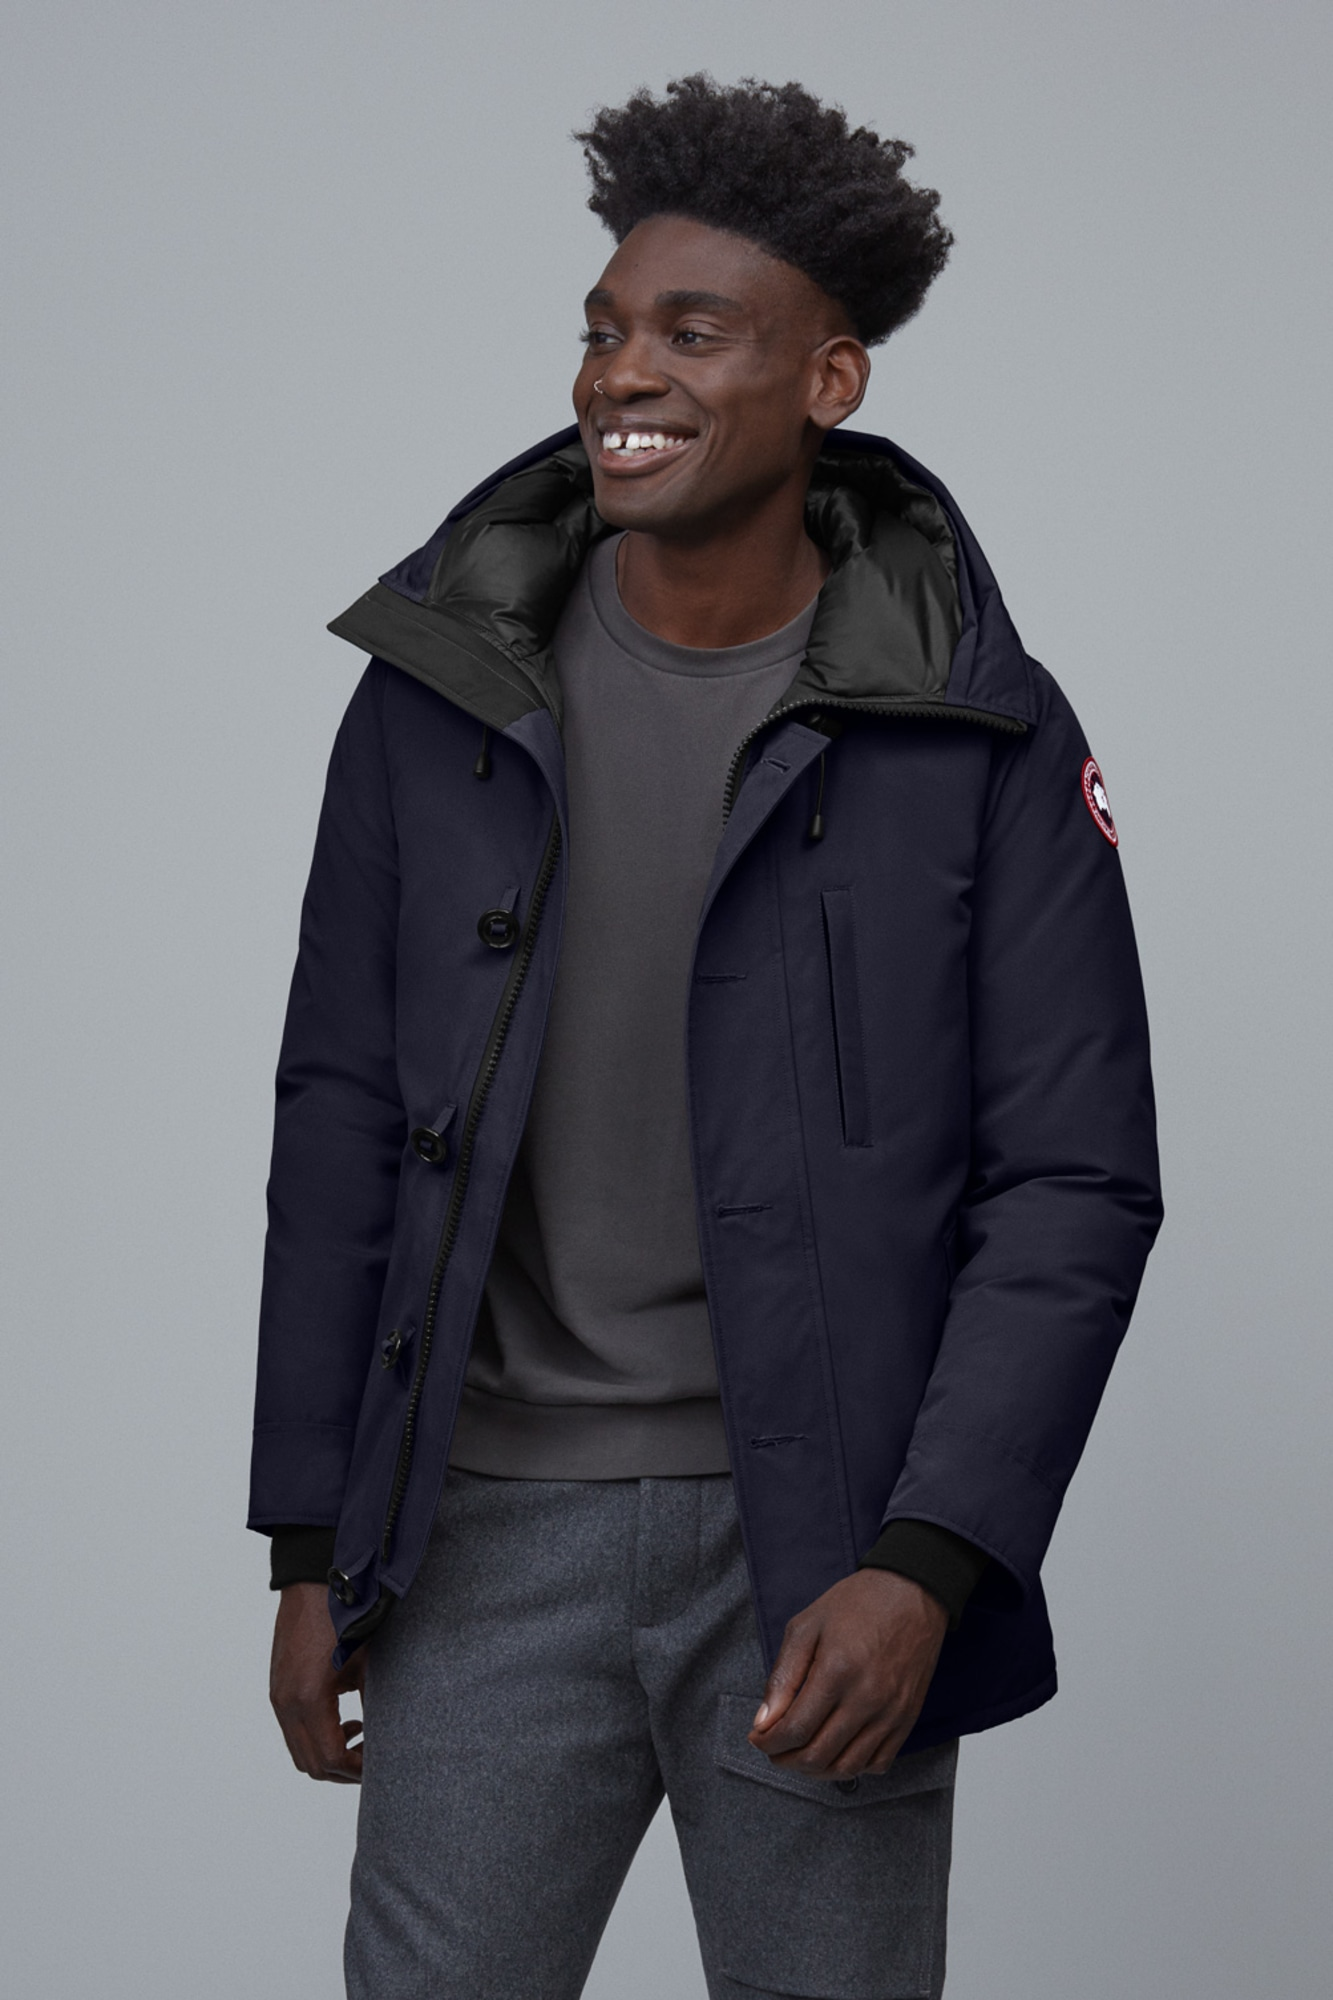 CANADA GOOSE CHATEAU PARKA down jacket olive size: S (Canadian goose)